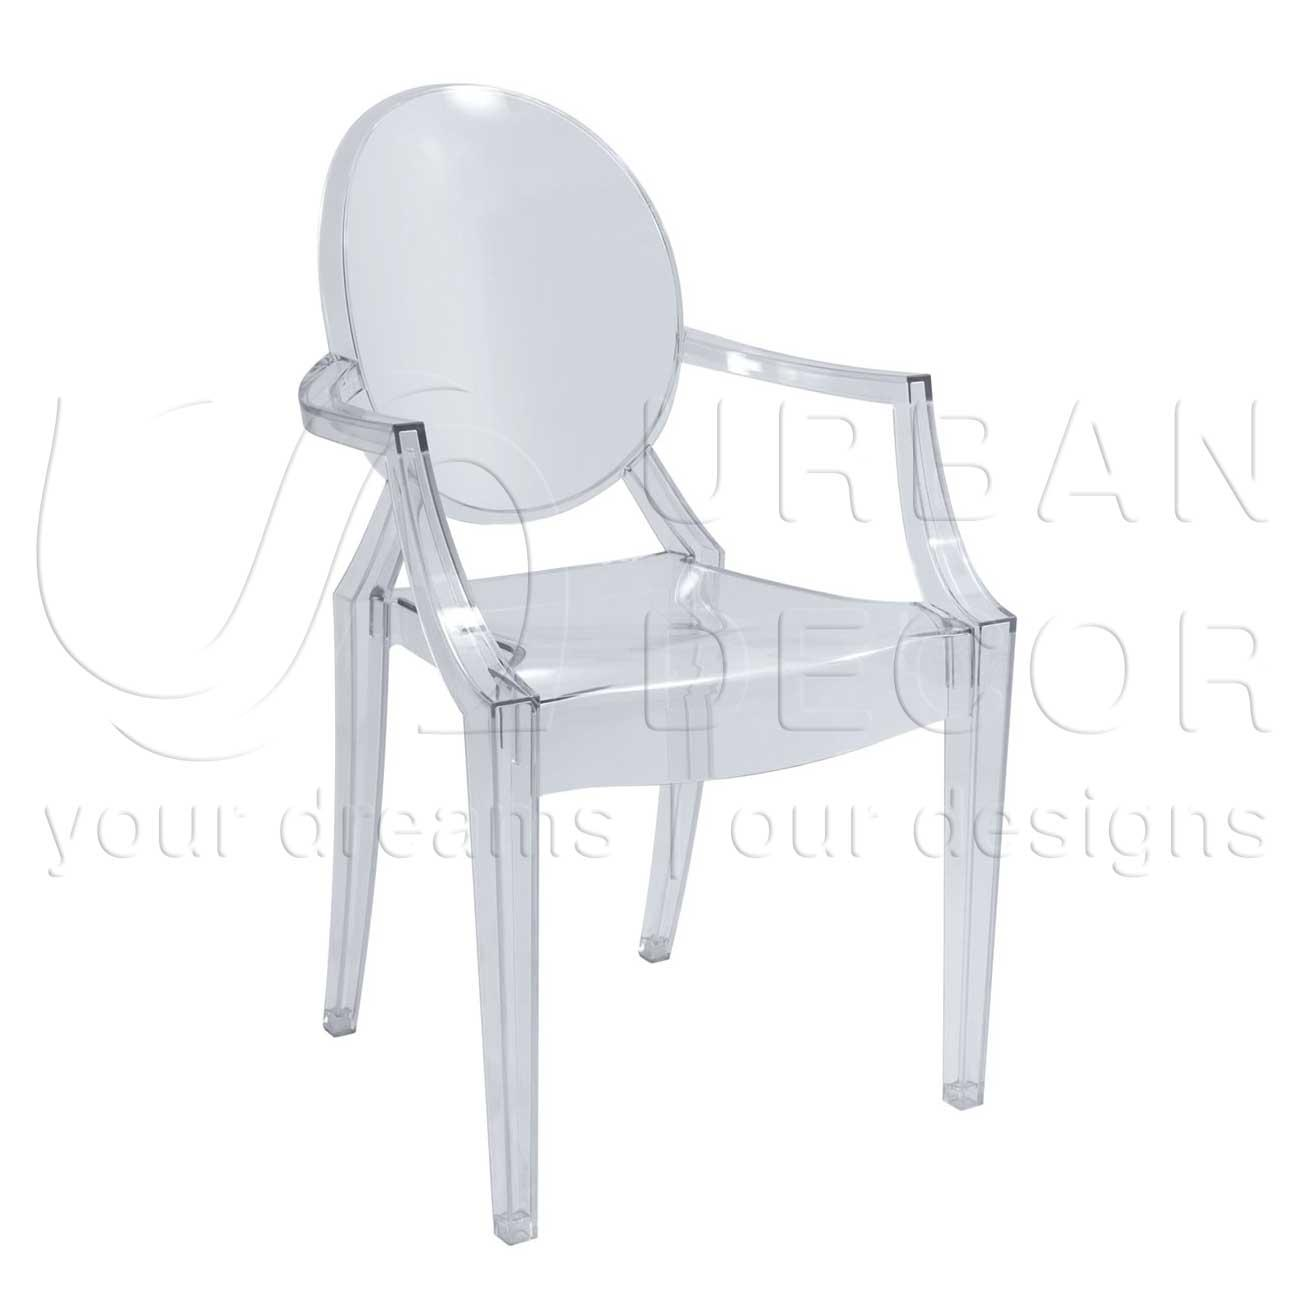 Clear Acrylic Chair Cafeteria Chairs Ghost Clear Polycarbonate Chair